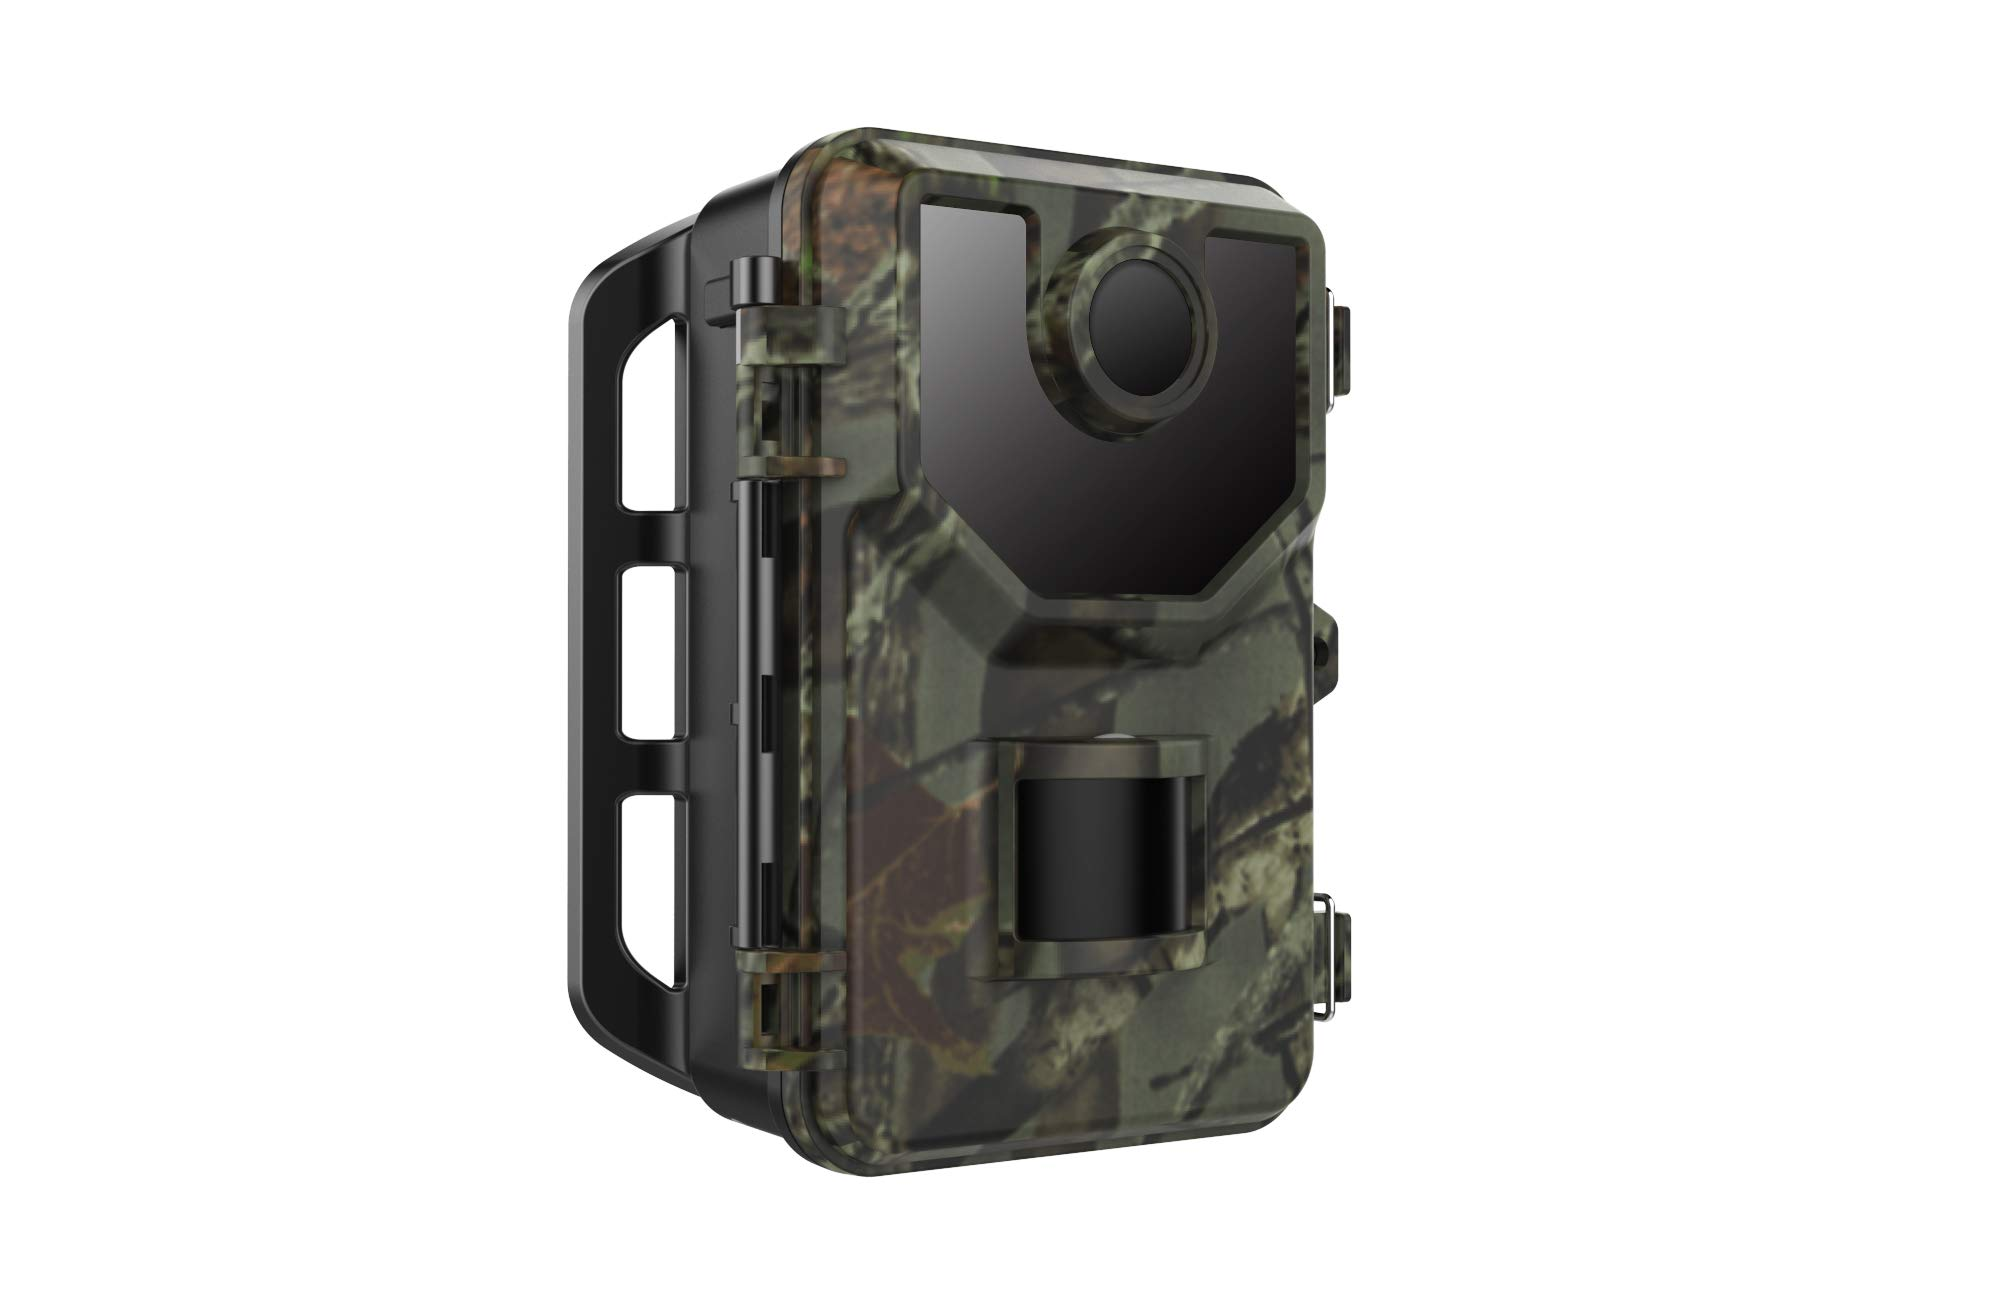 Trail Game Camera 1080P 16MP Wildlife Hunting Camera,Motion Activated Infrared Night Vision Camera for Wildlife Hunting &Home Security,2.4'' LCD Display,IP65 Waterproof,120° FOV,48 LEDs (Brown 03006)